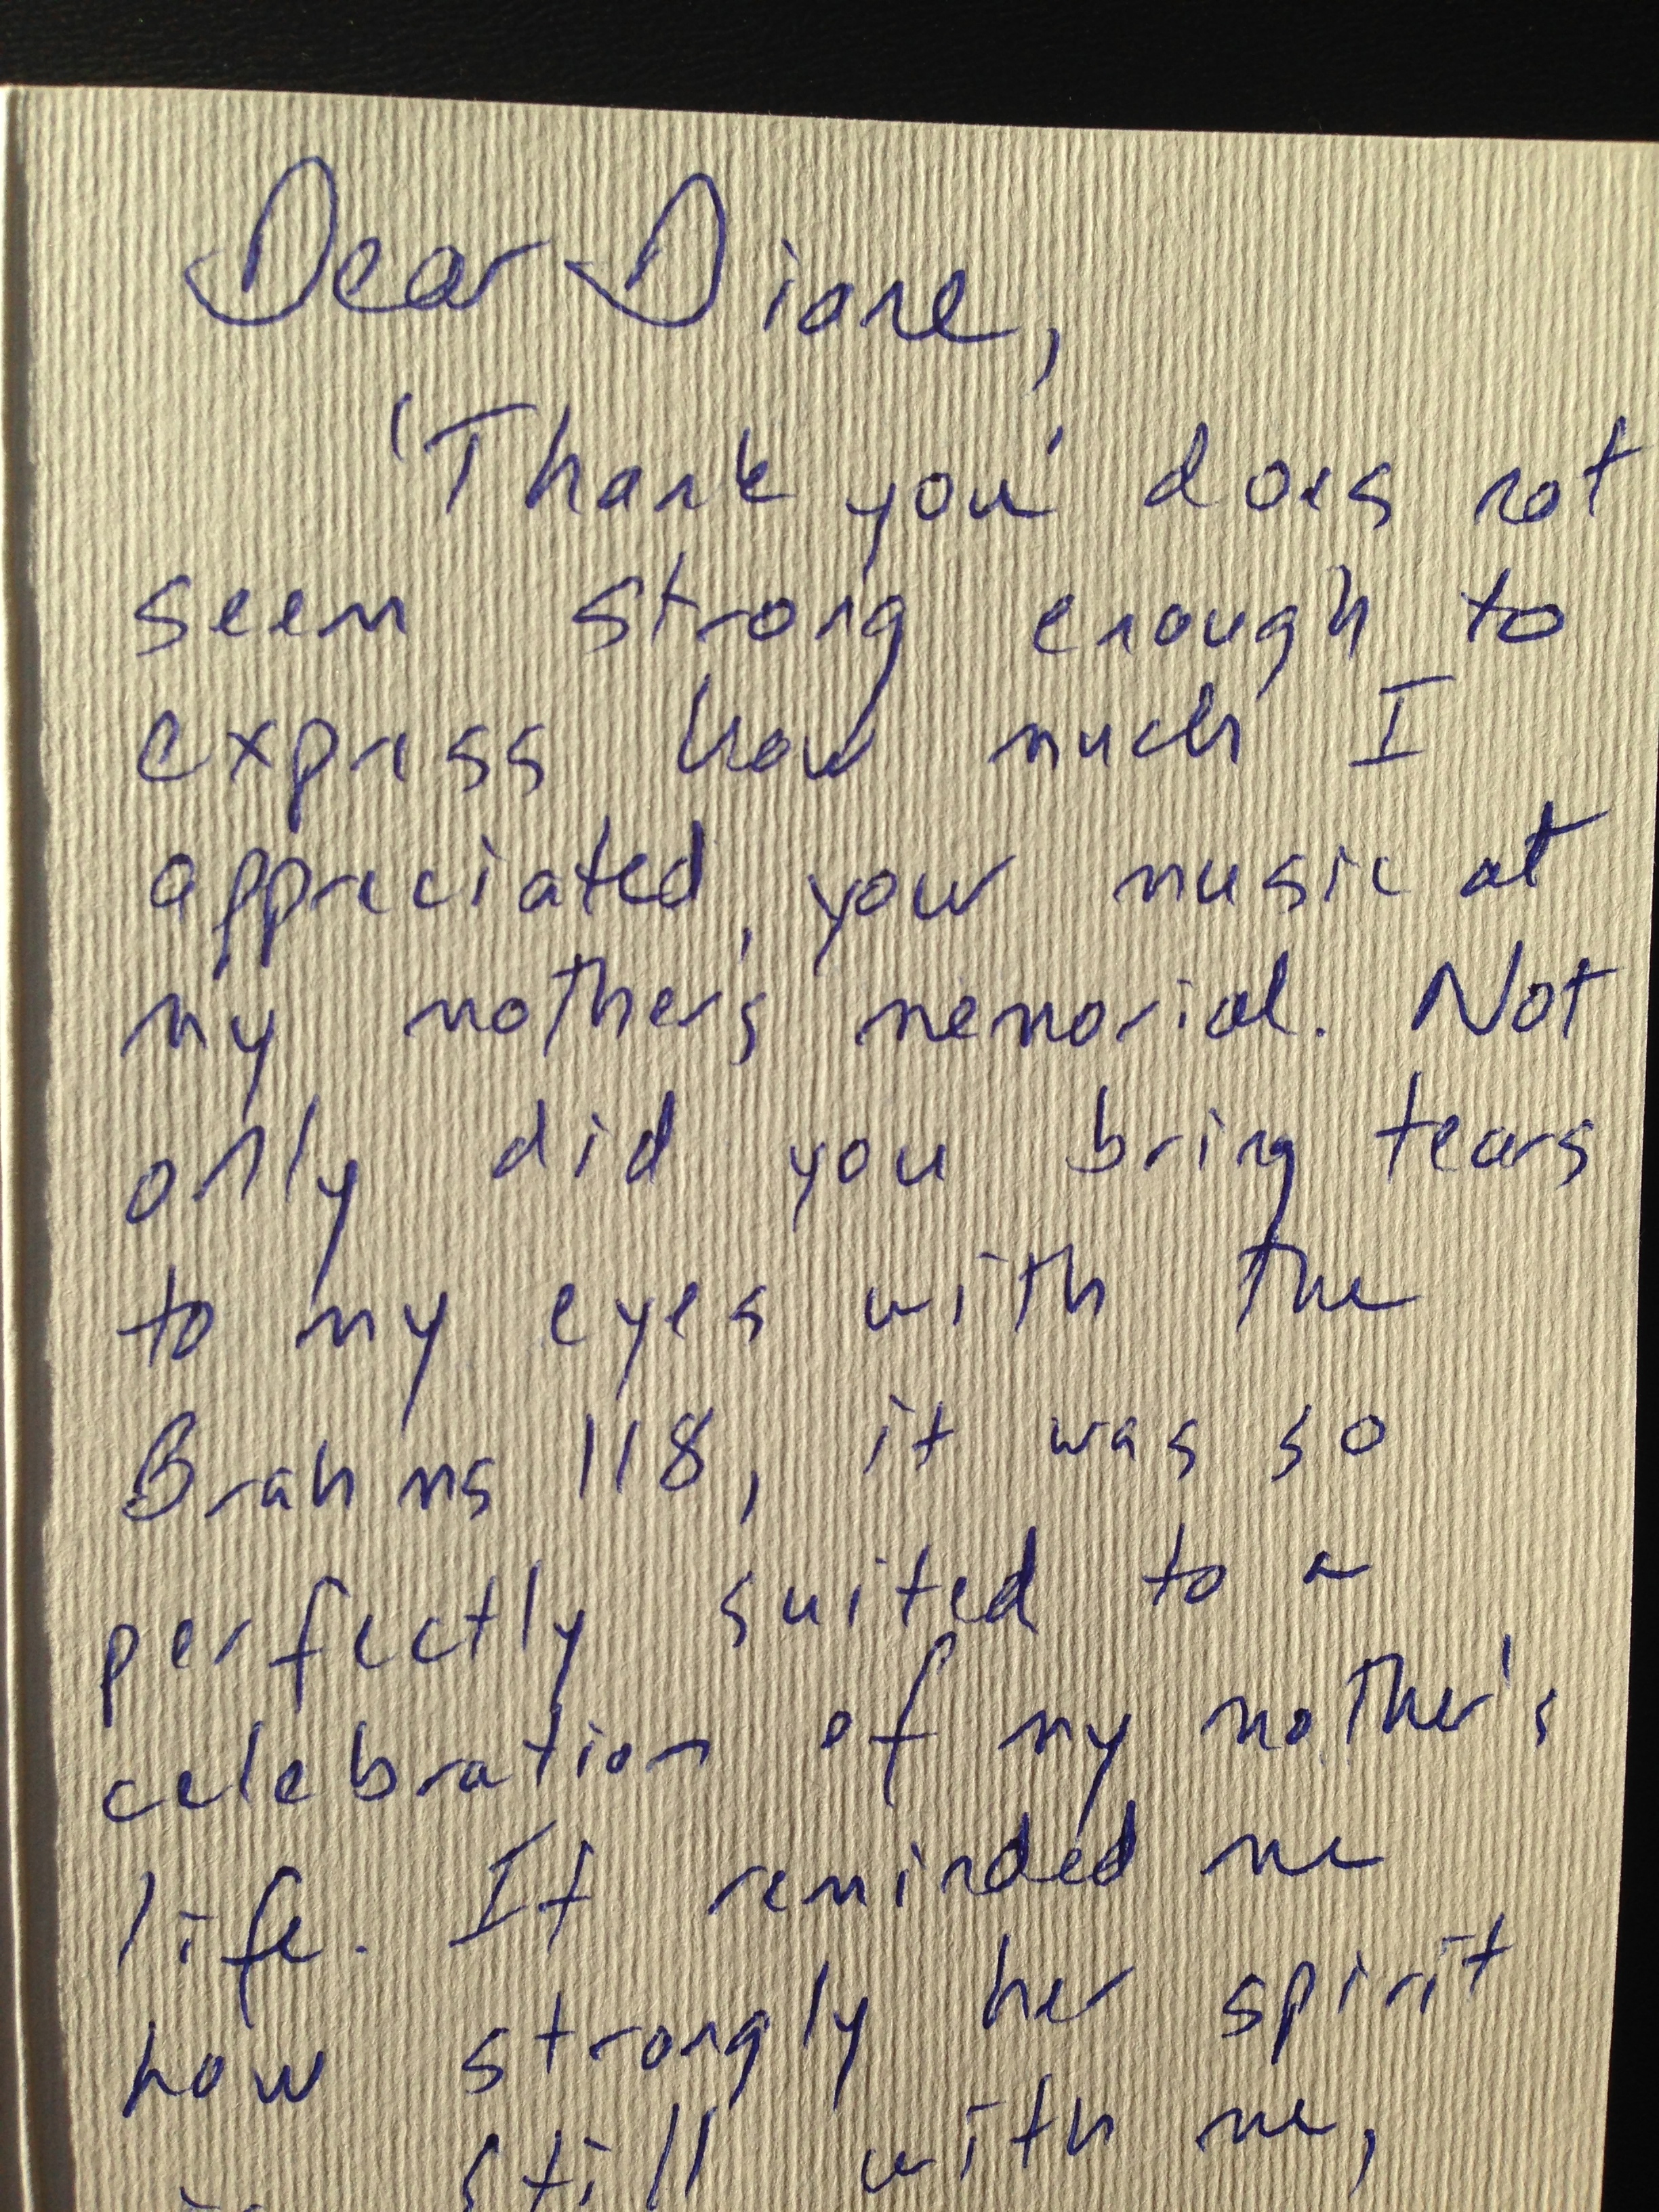 This is from the mother of two students I have taught for many years. I had the privilege of playing at her mother's (my student's grandmother) memorial service. Her older daughter was the inspiration for my series   Attention Grabbers.